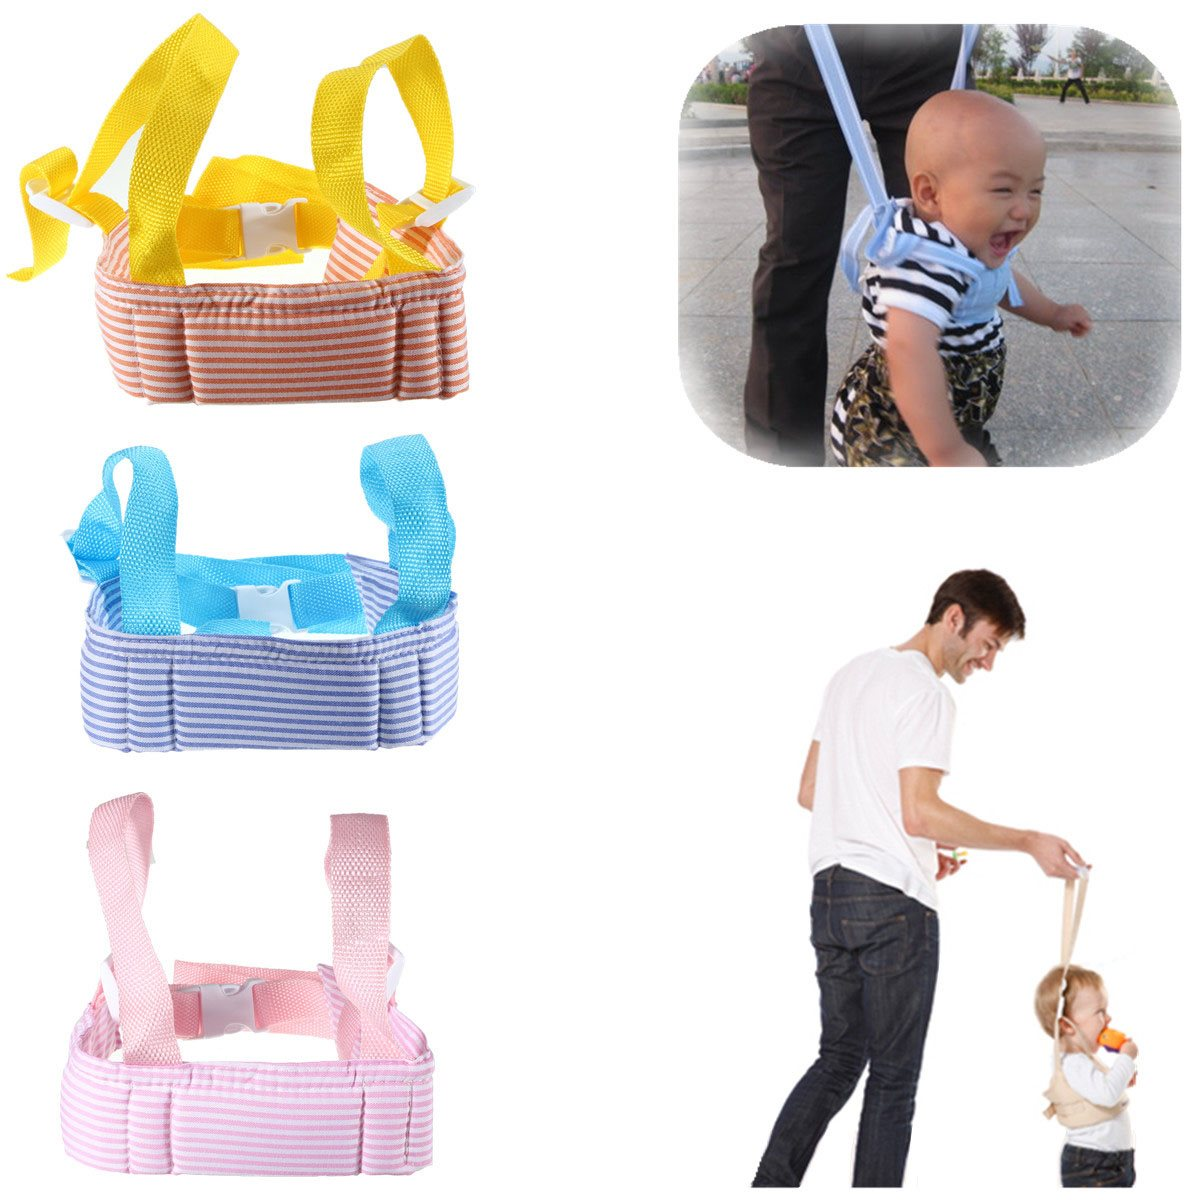 Portable Baby Toddler Walking Assistant Learning Walk Safety Reins Walker Wings Baby Kids Keeper Toddler Walking Safety Harness best selling fashion printed baby walker assistant toddler baby walking belt safety harness leash infant baby walker